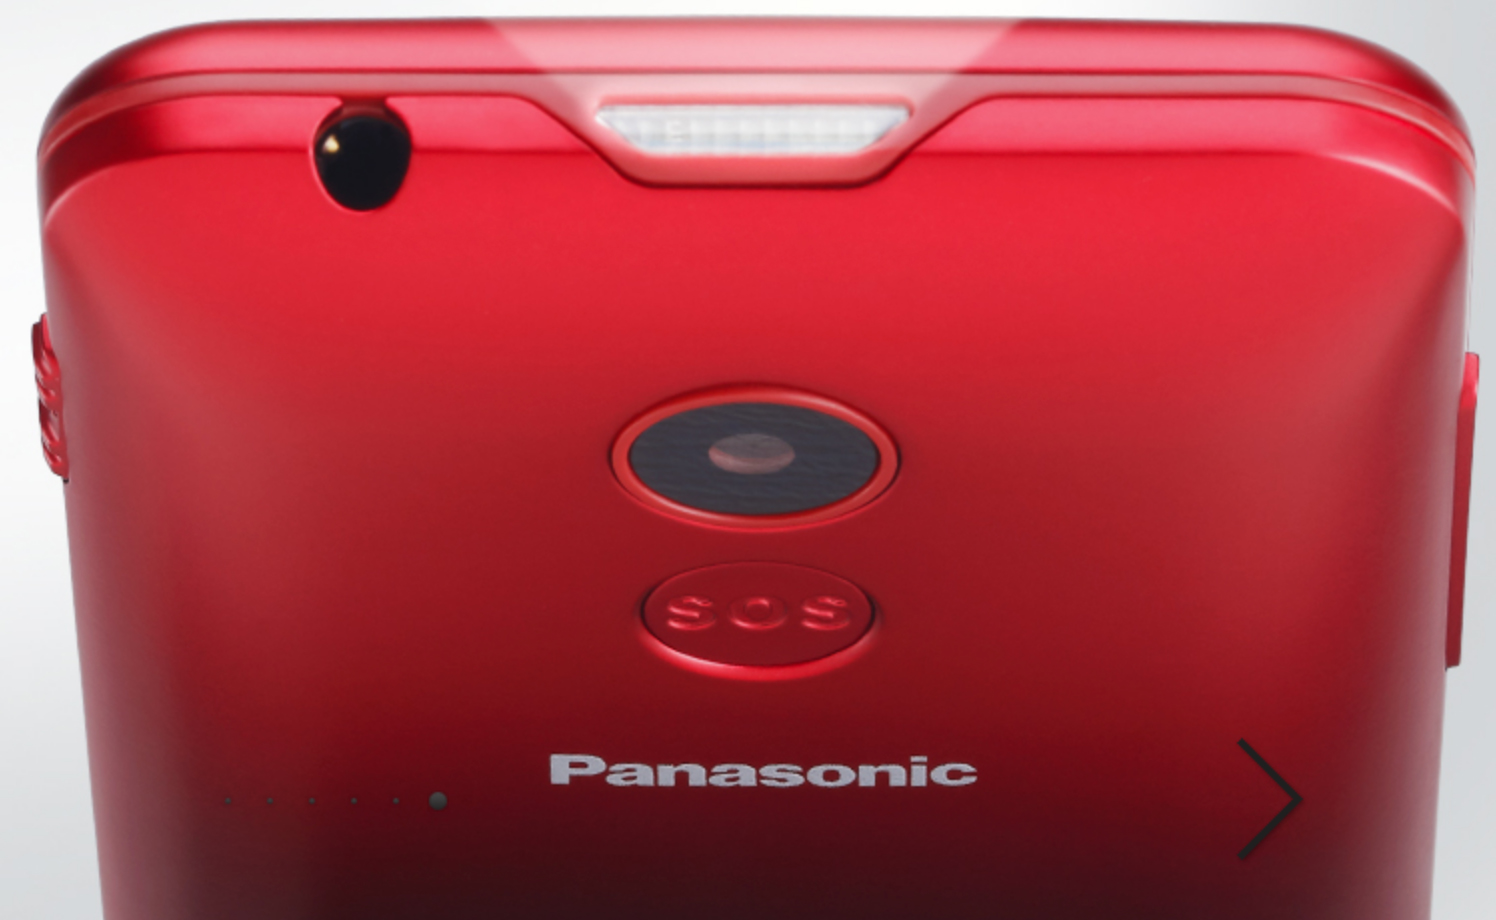 Panasonic-KX-TU150_1 senior phone